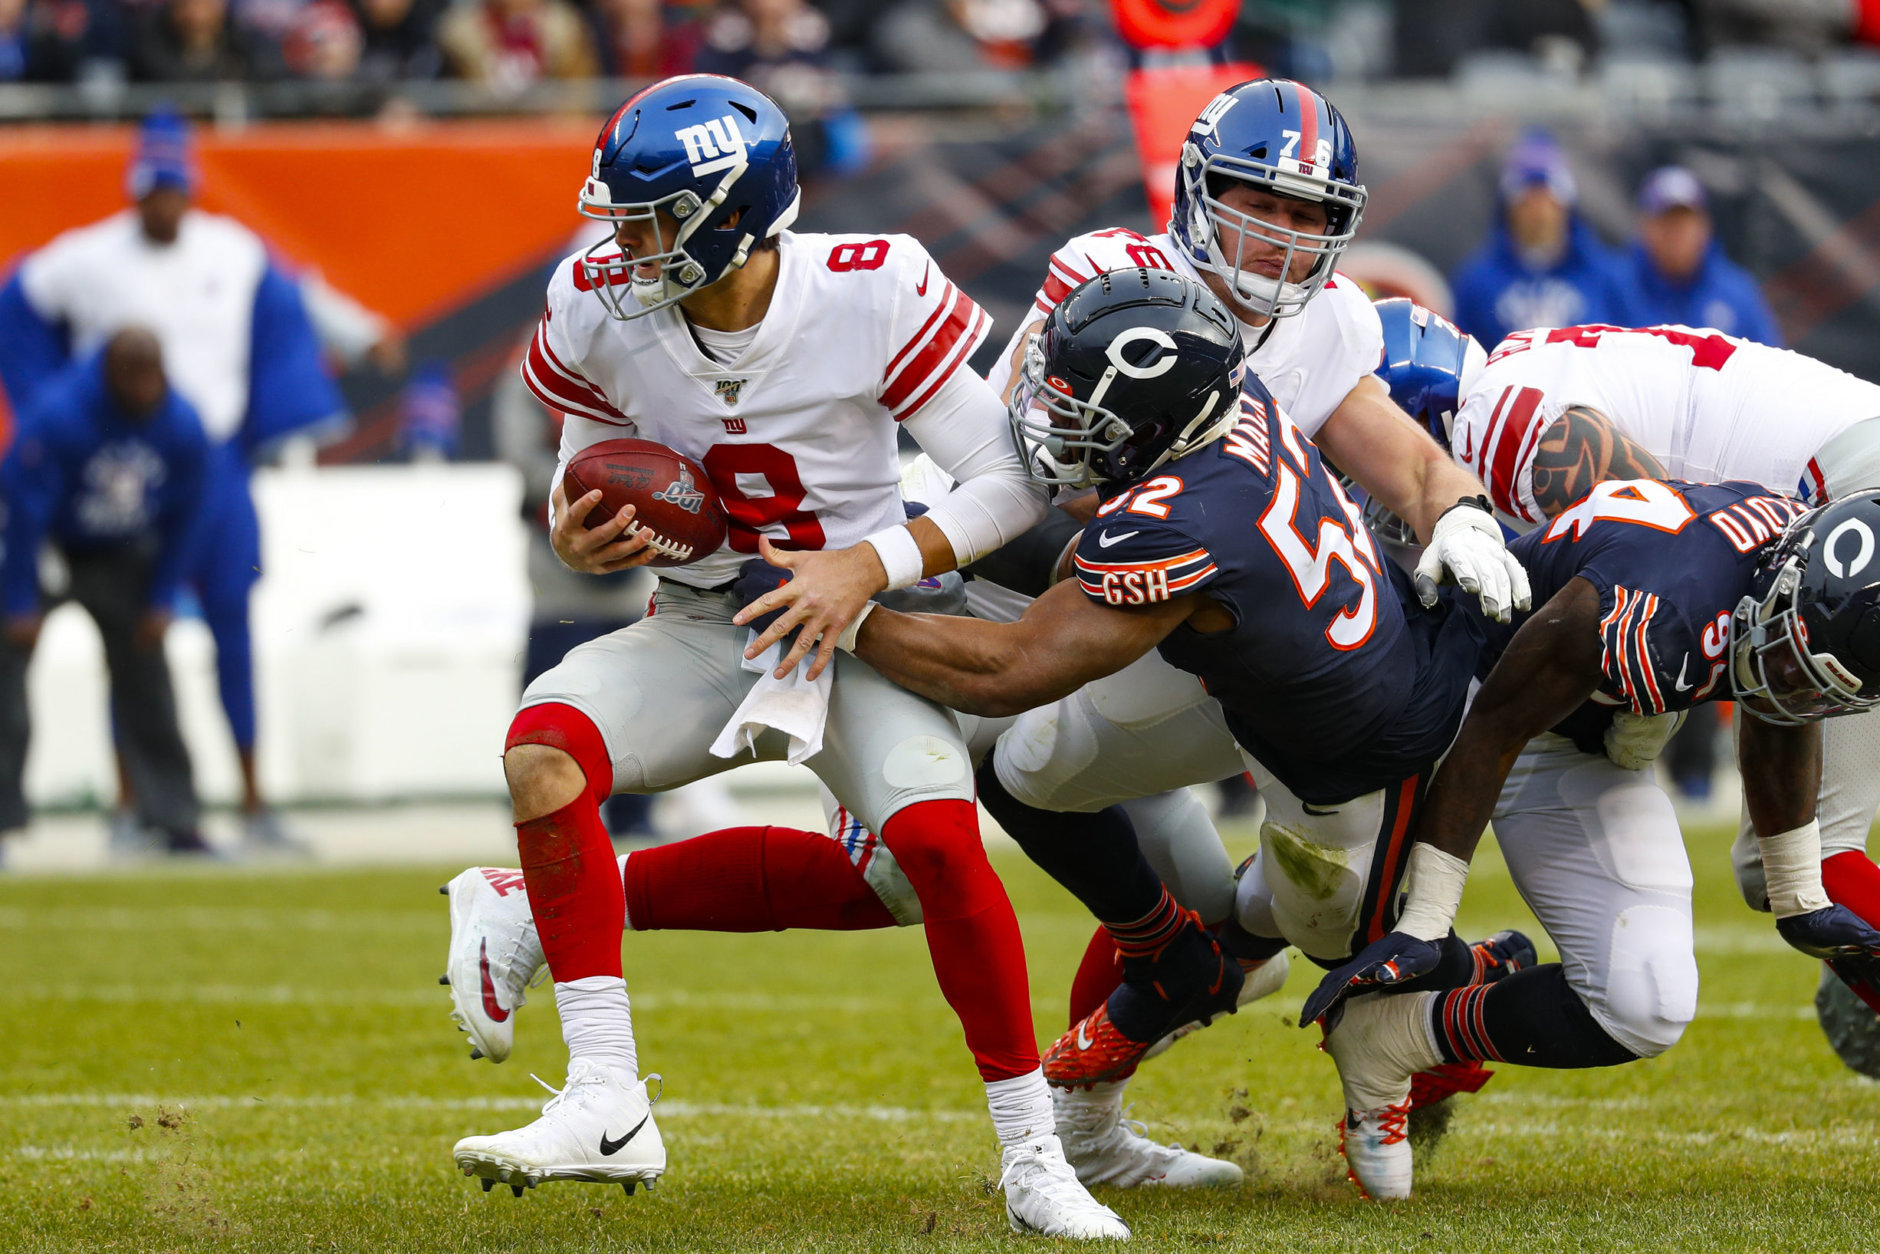 "<p><em><strong>Giants 14</strong></em><br /> <em><strong>Bears 19</strong></em></p> <p>A week after getting shutout on the stat sheet, Khalil Mack set up a touchdown with a strip sack of Daniel HIT IT MAESTRO!</p> <p><iframe src=""https://www.youtube.com/embed/uB1D9wWxd2w"" width=""560"" height=""315"" frameborder=""0"" allowfullscreen=""allowfullscreen""></iframe></p>"